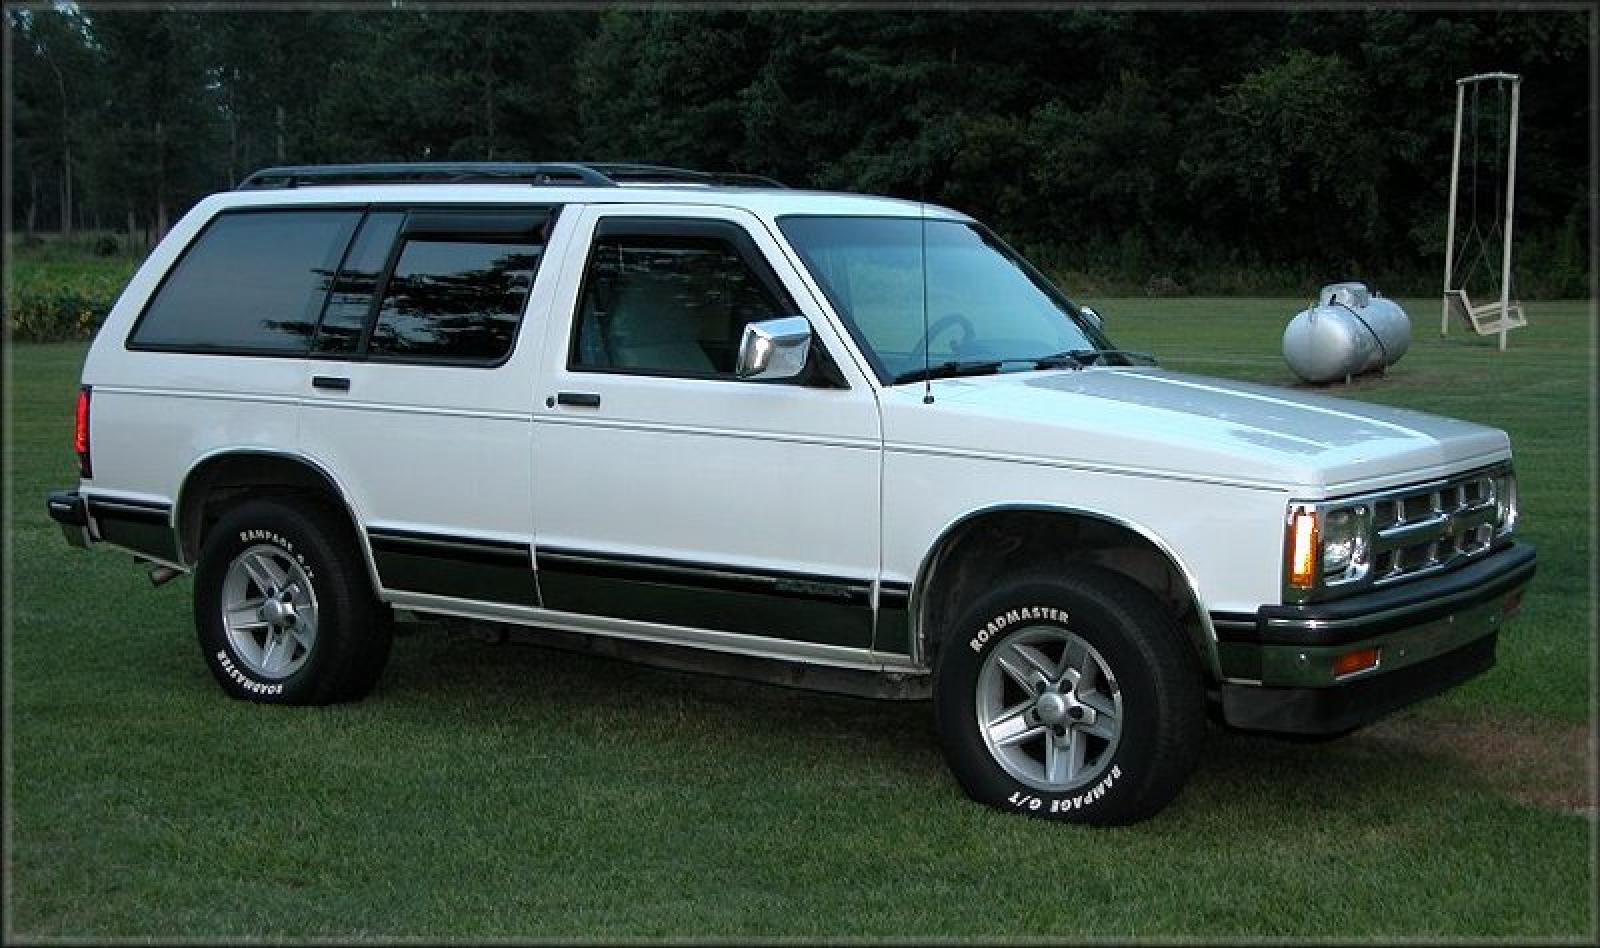 1994 Chevrolet Blazer Information And Photos Zombiedrive 2000 Chevy 2 Door Under Hood Fuse Box Diagram 800 1024 1280 1600 Origin